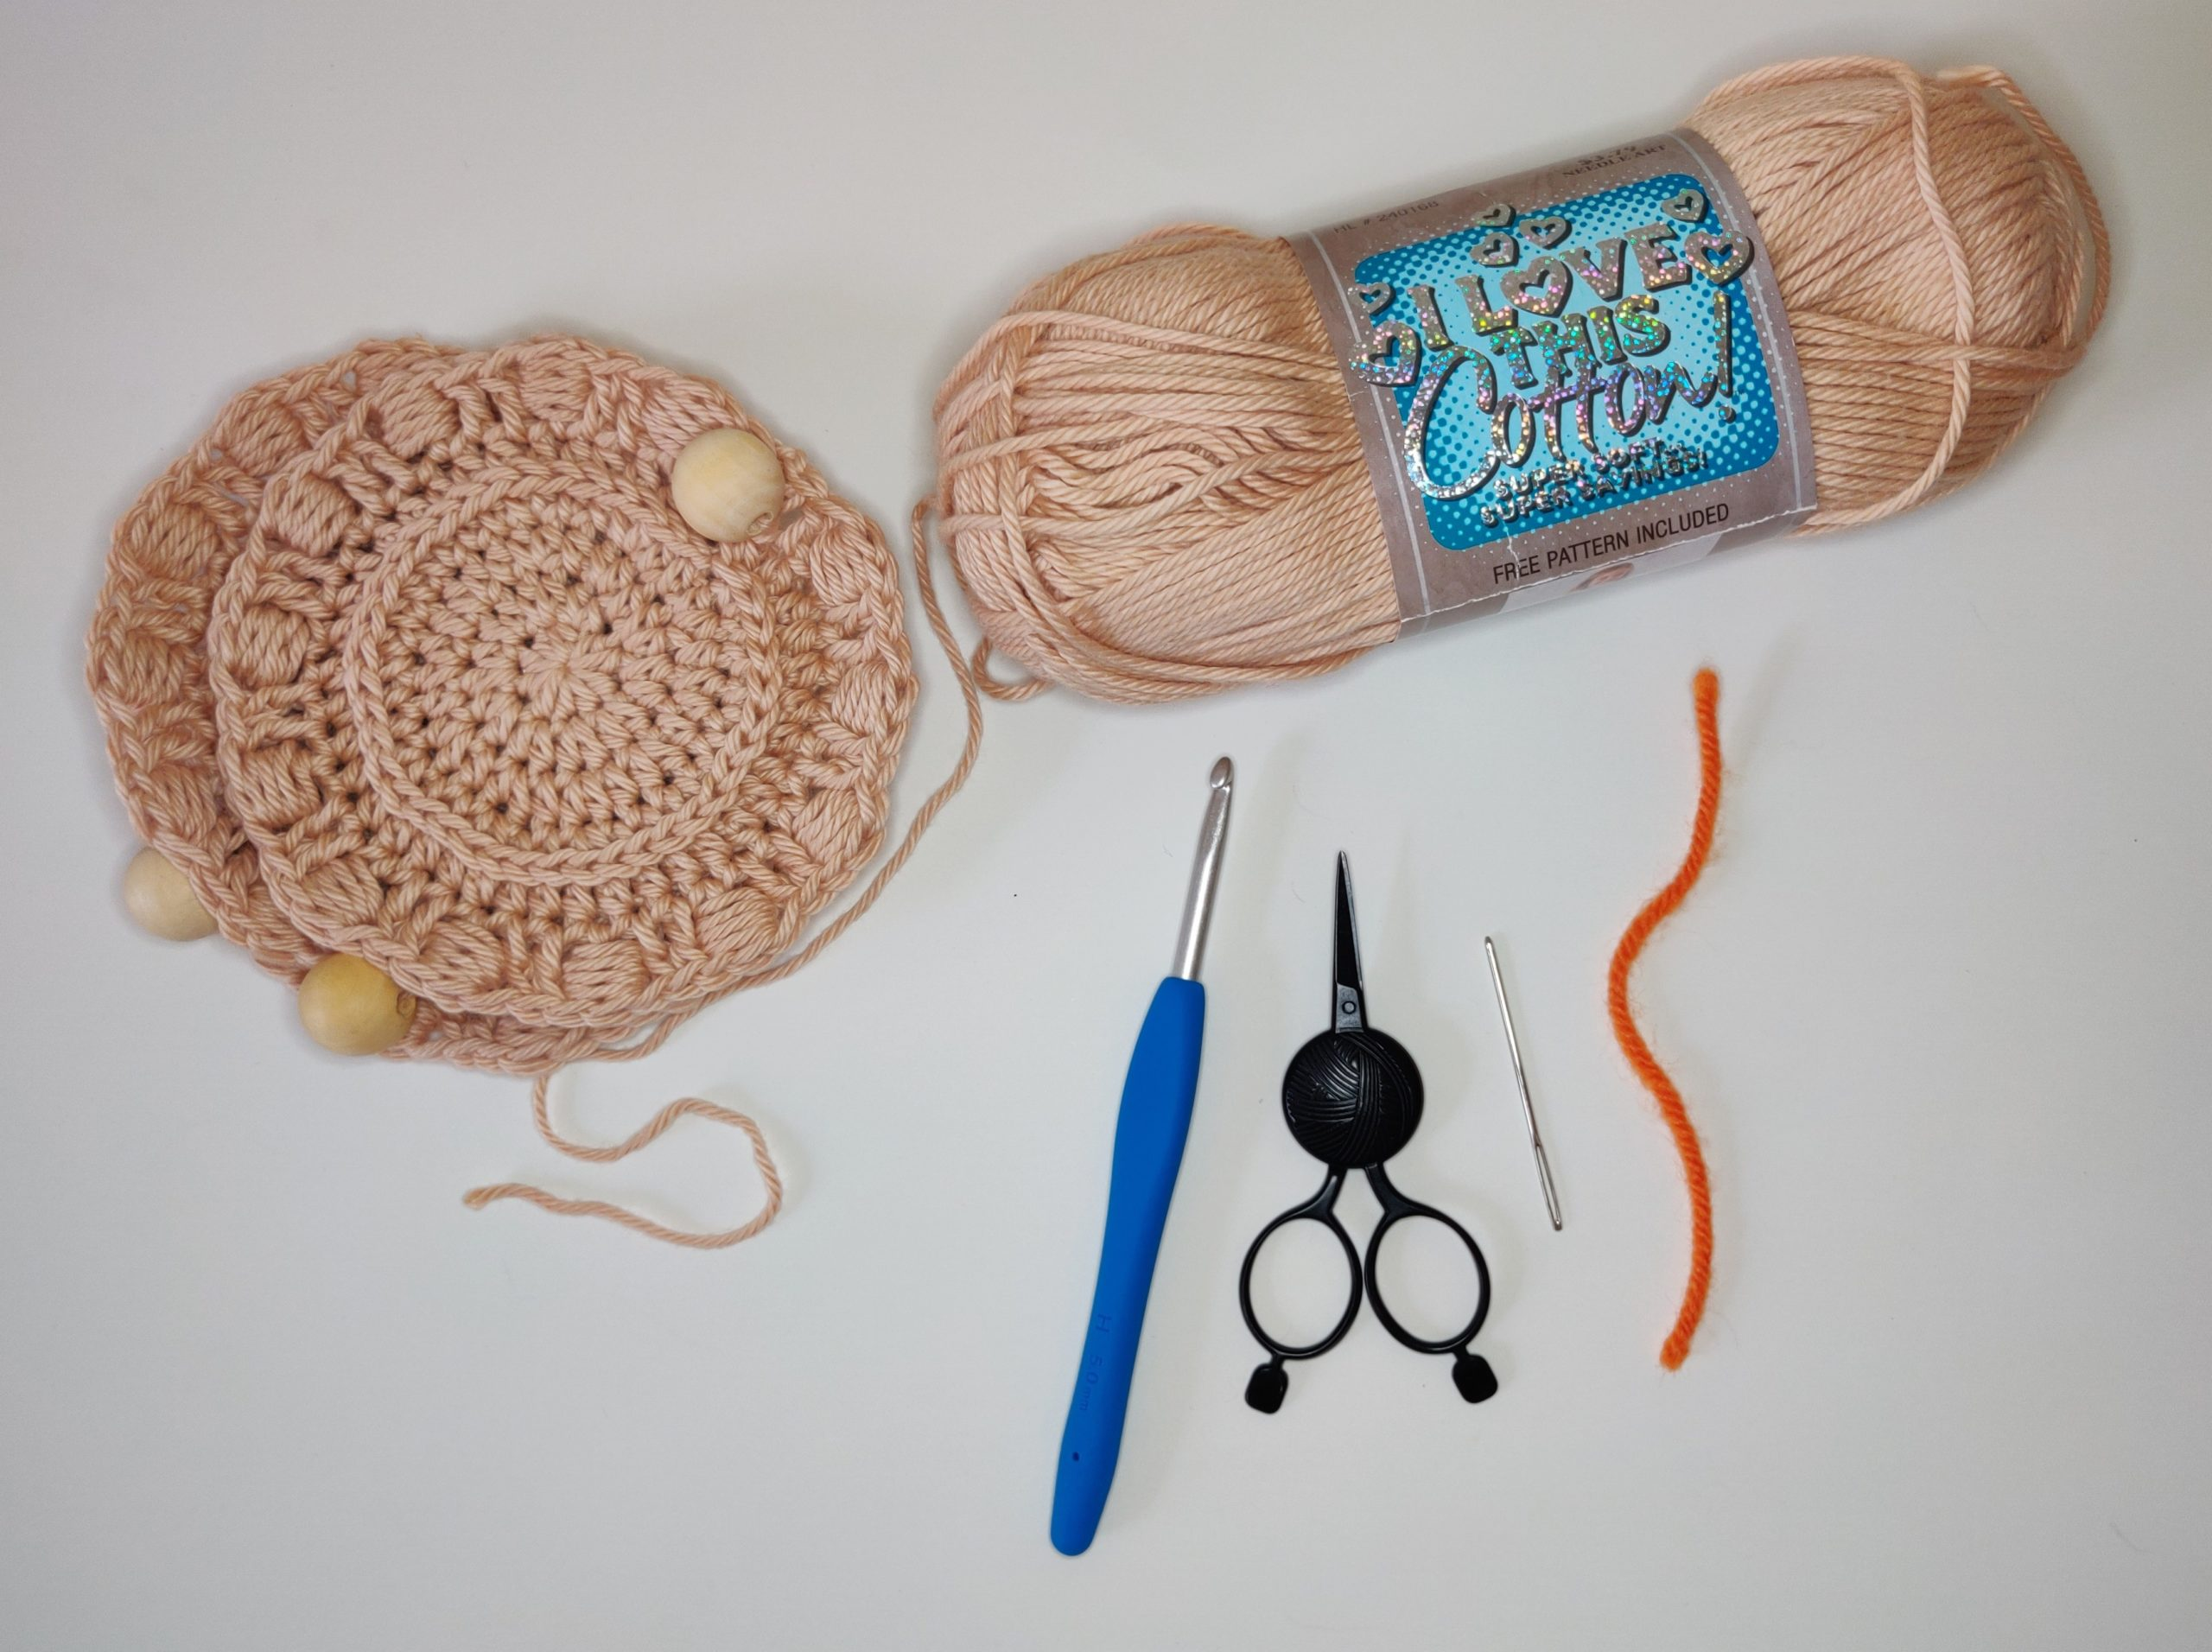 Materials for crochet, scissors, yarn and crochet hook.